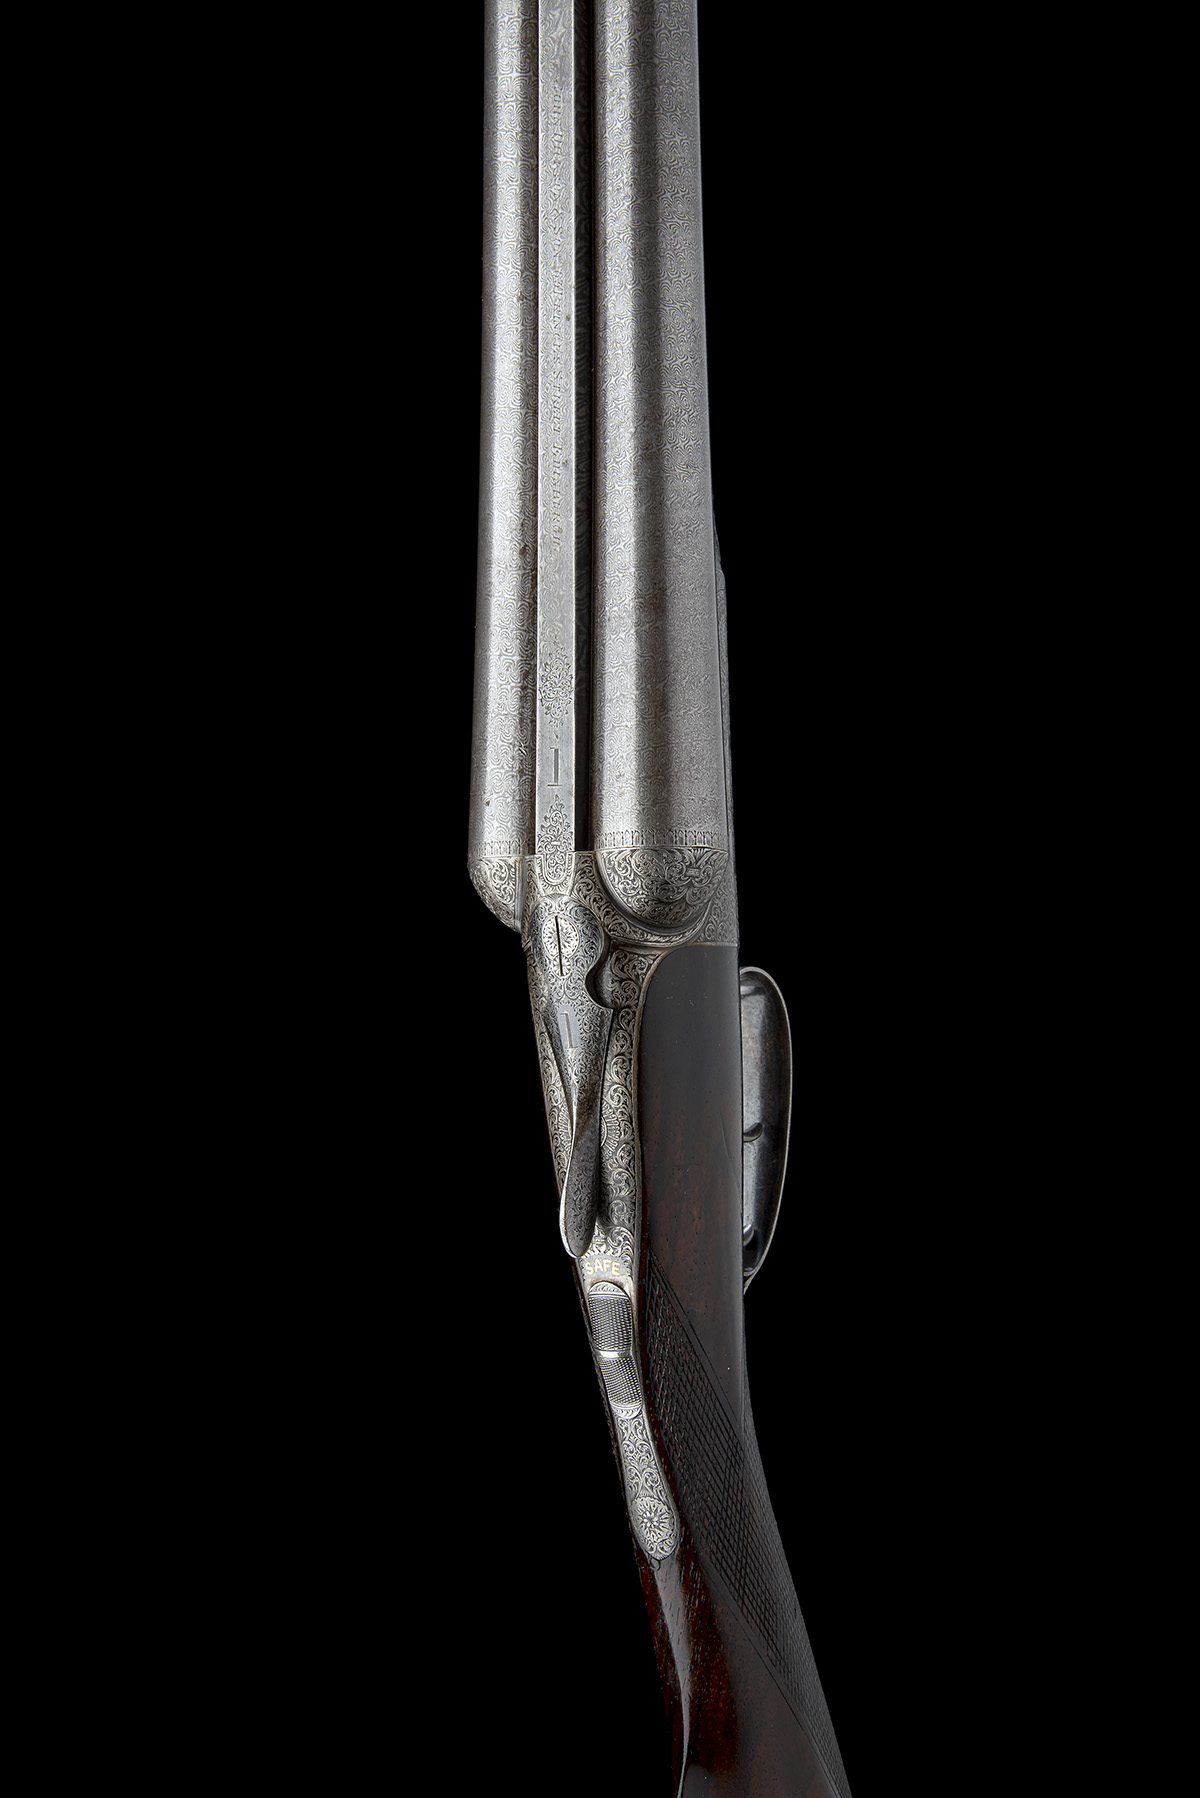 JOHN DICKSON & SON A 12-BORE 1887 PATENT 'ROUND-ACTION' TRIGGERPLATE-ACTION EJECTOR, serial no. - Image 4 of 8